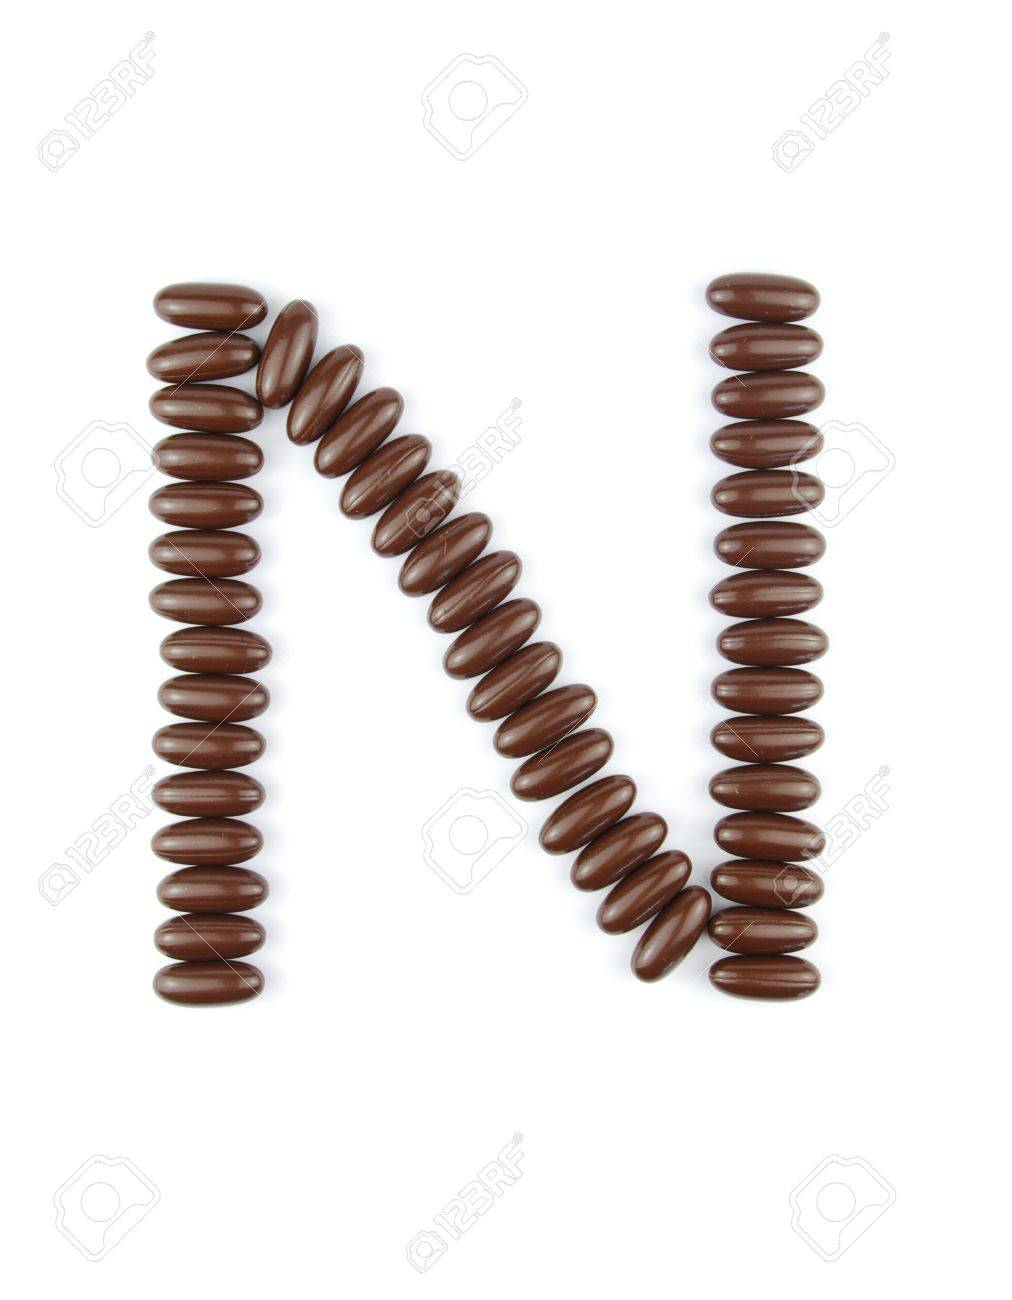 alphabet letter N with chocolate candies (isolated on white background) Stock Photo - 7195588